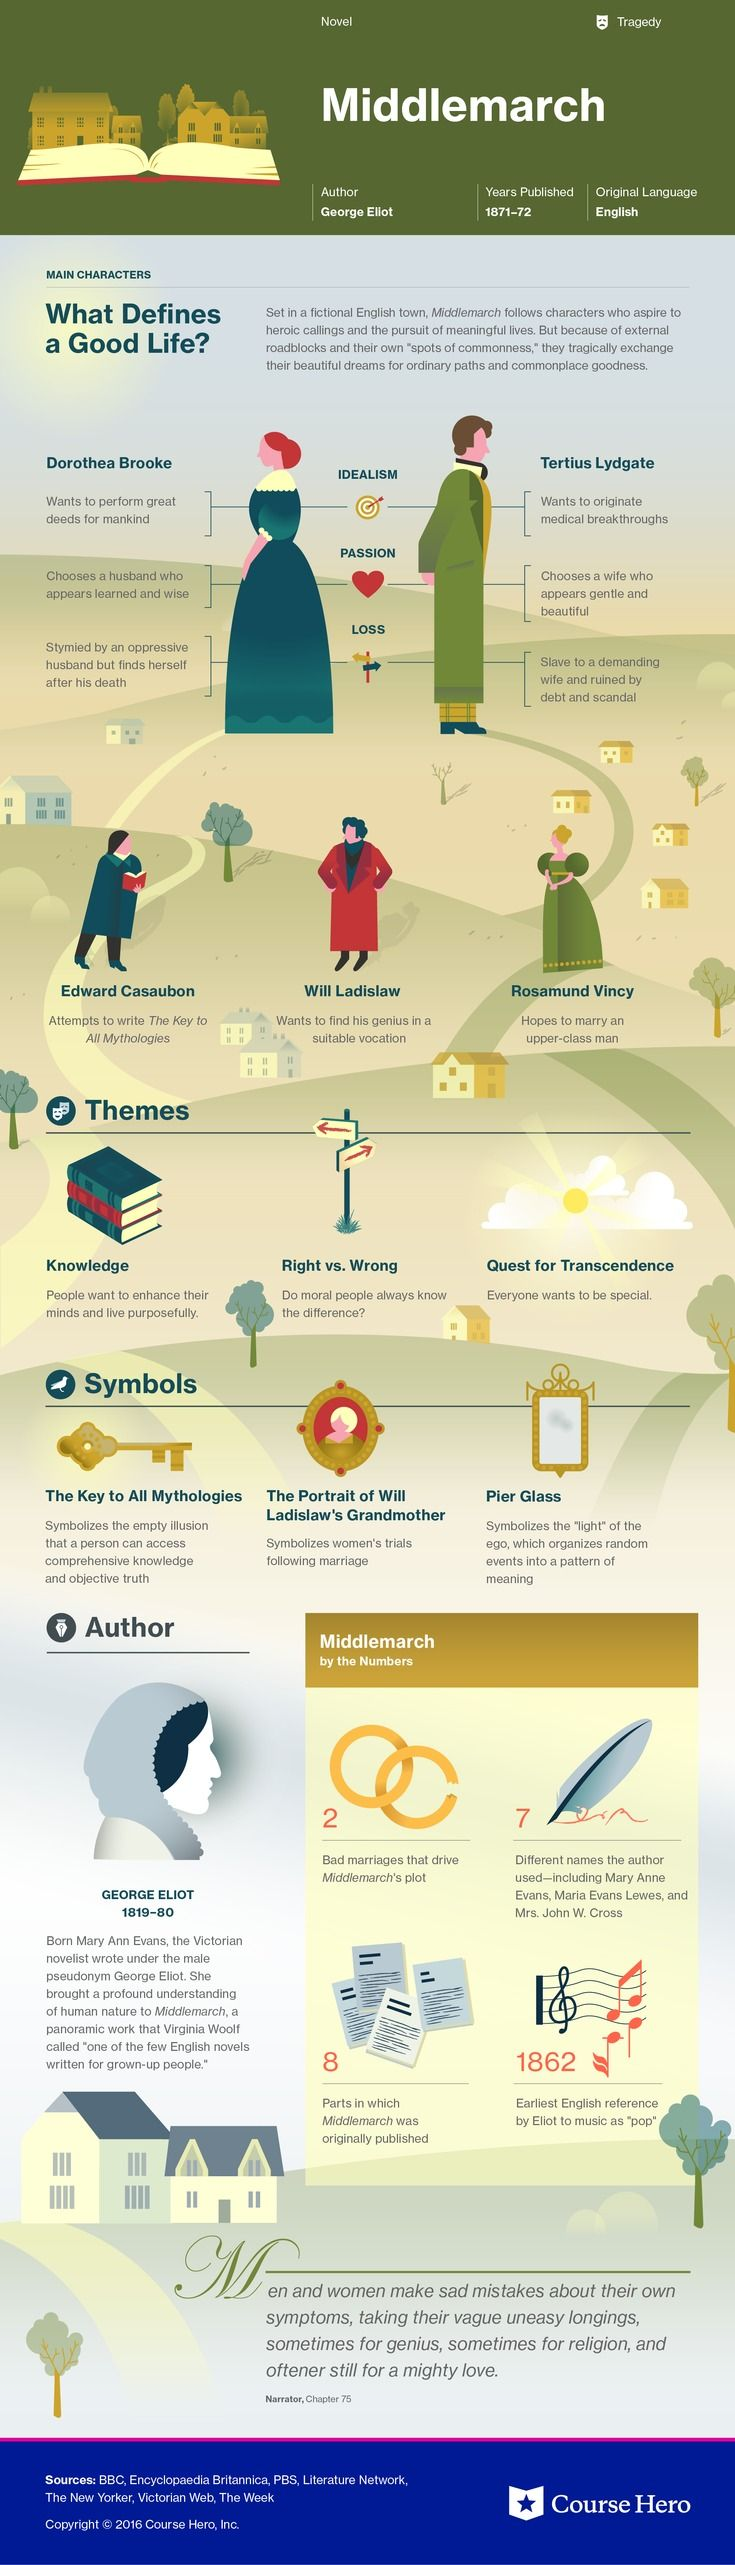 best images about infographics social media study guide for george eliot s middle including chapter summary character analysis and more learn all about middle ask questions